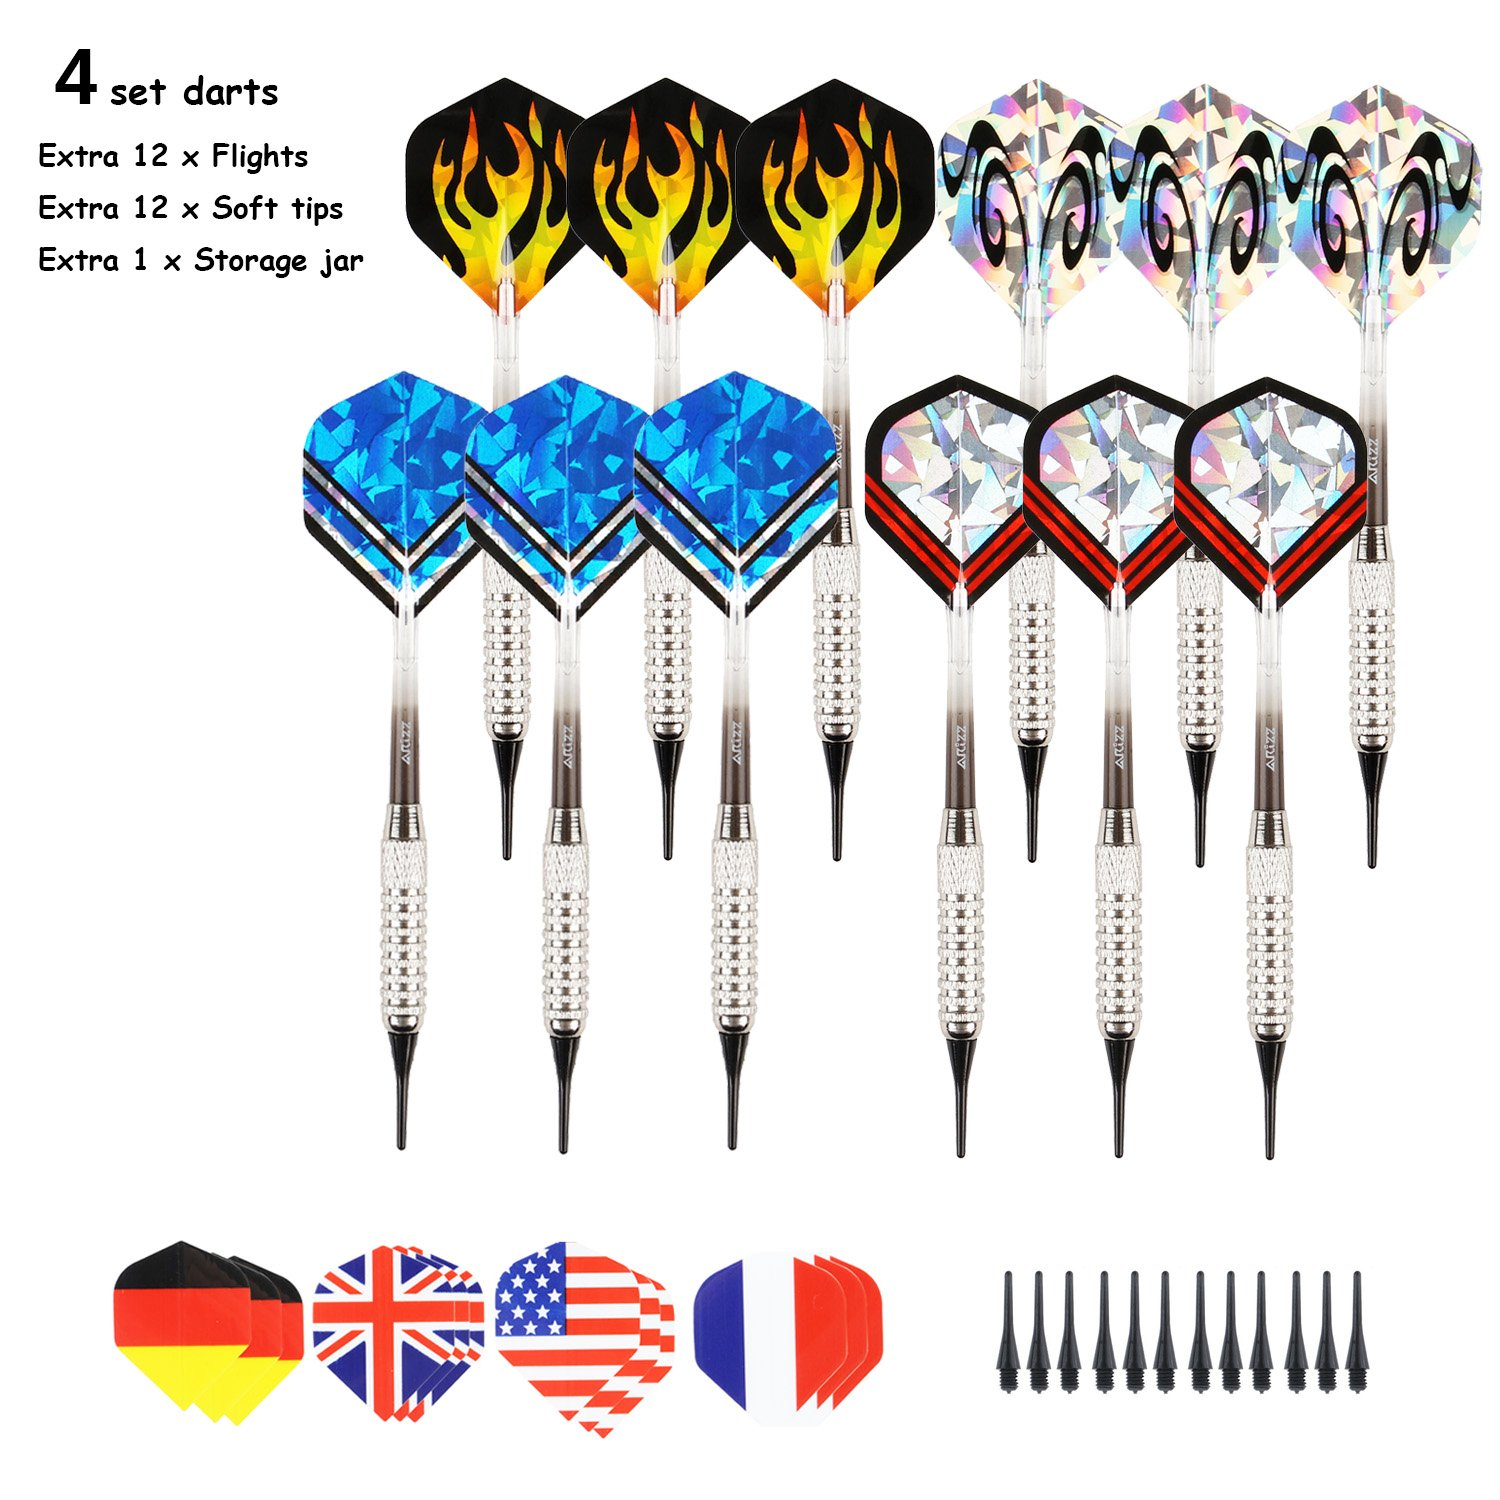 Misayar ARIZZ 12 Pcs Soft Tip Darts 17 Grams with 8 Style 24 Flights and 24 Soft Tip Points for Electronic Dartboards